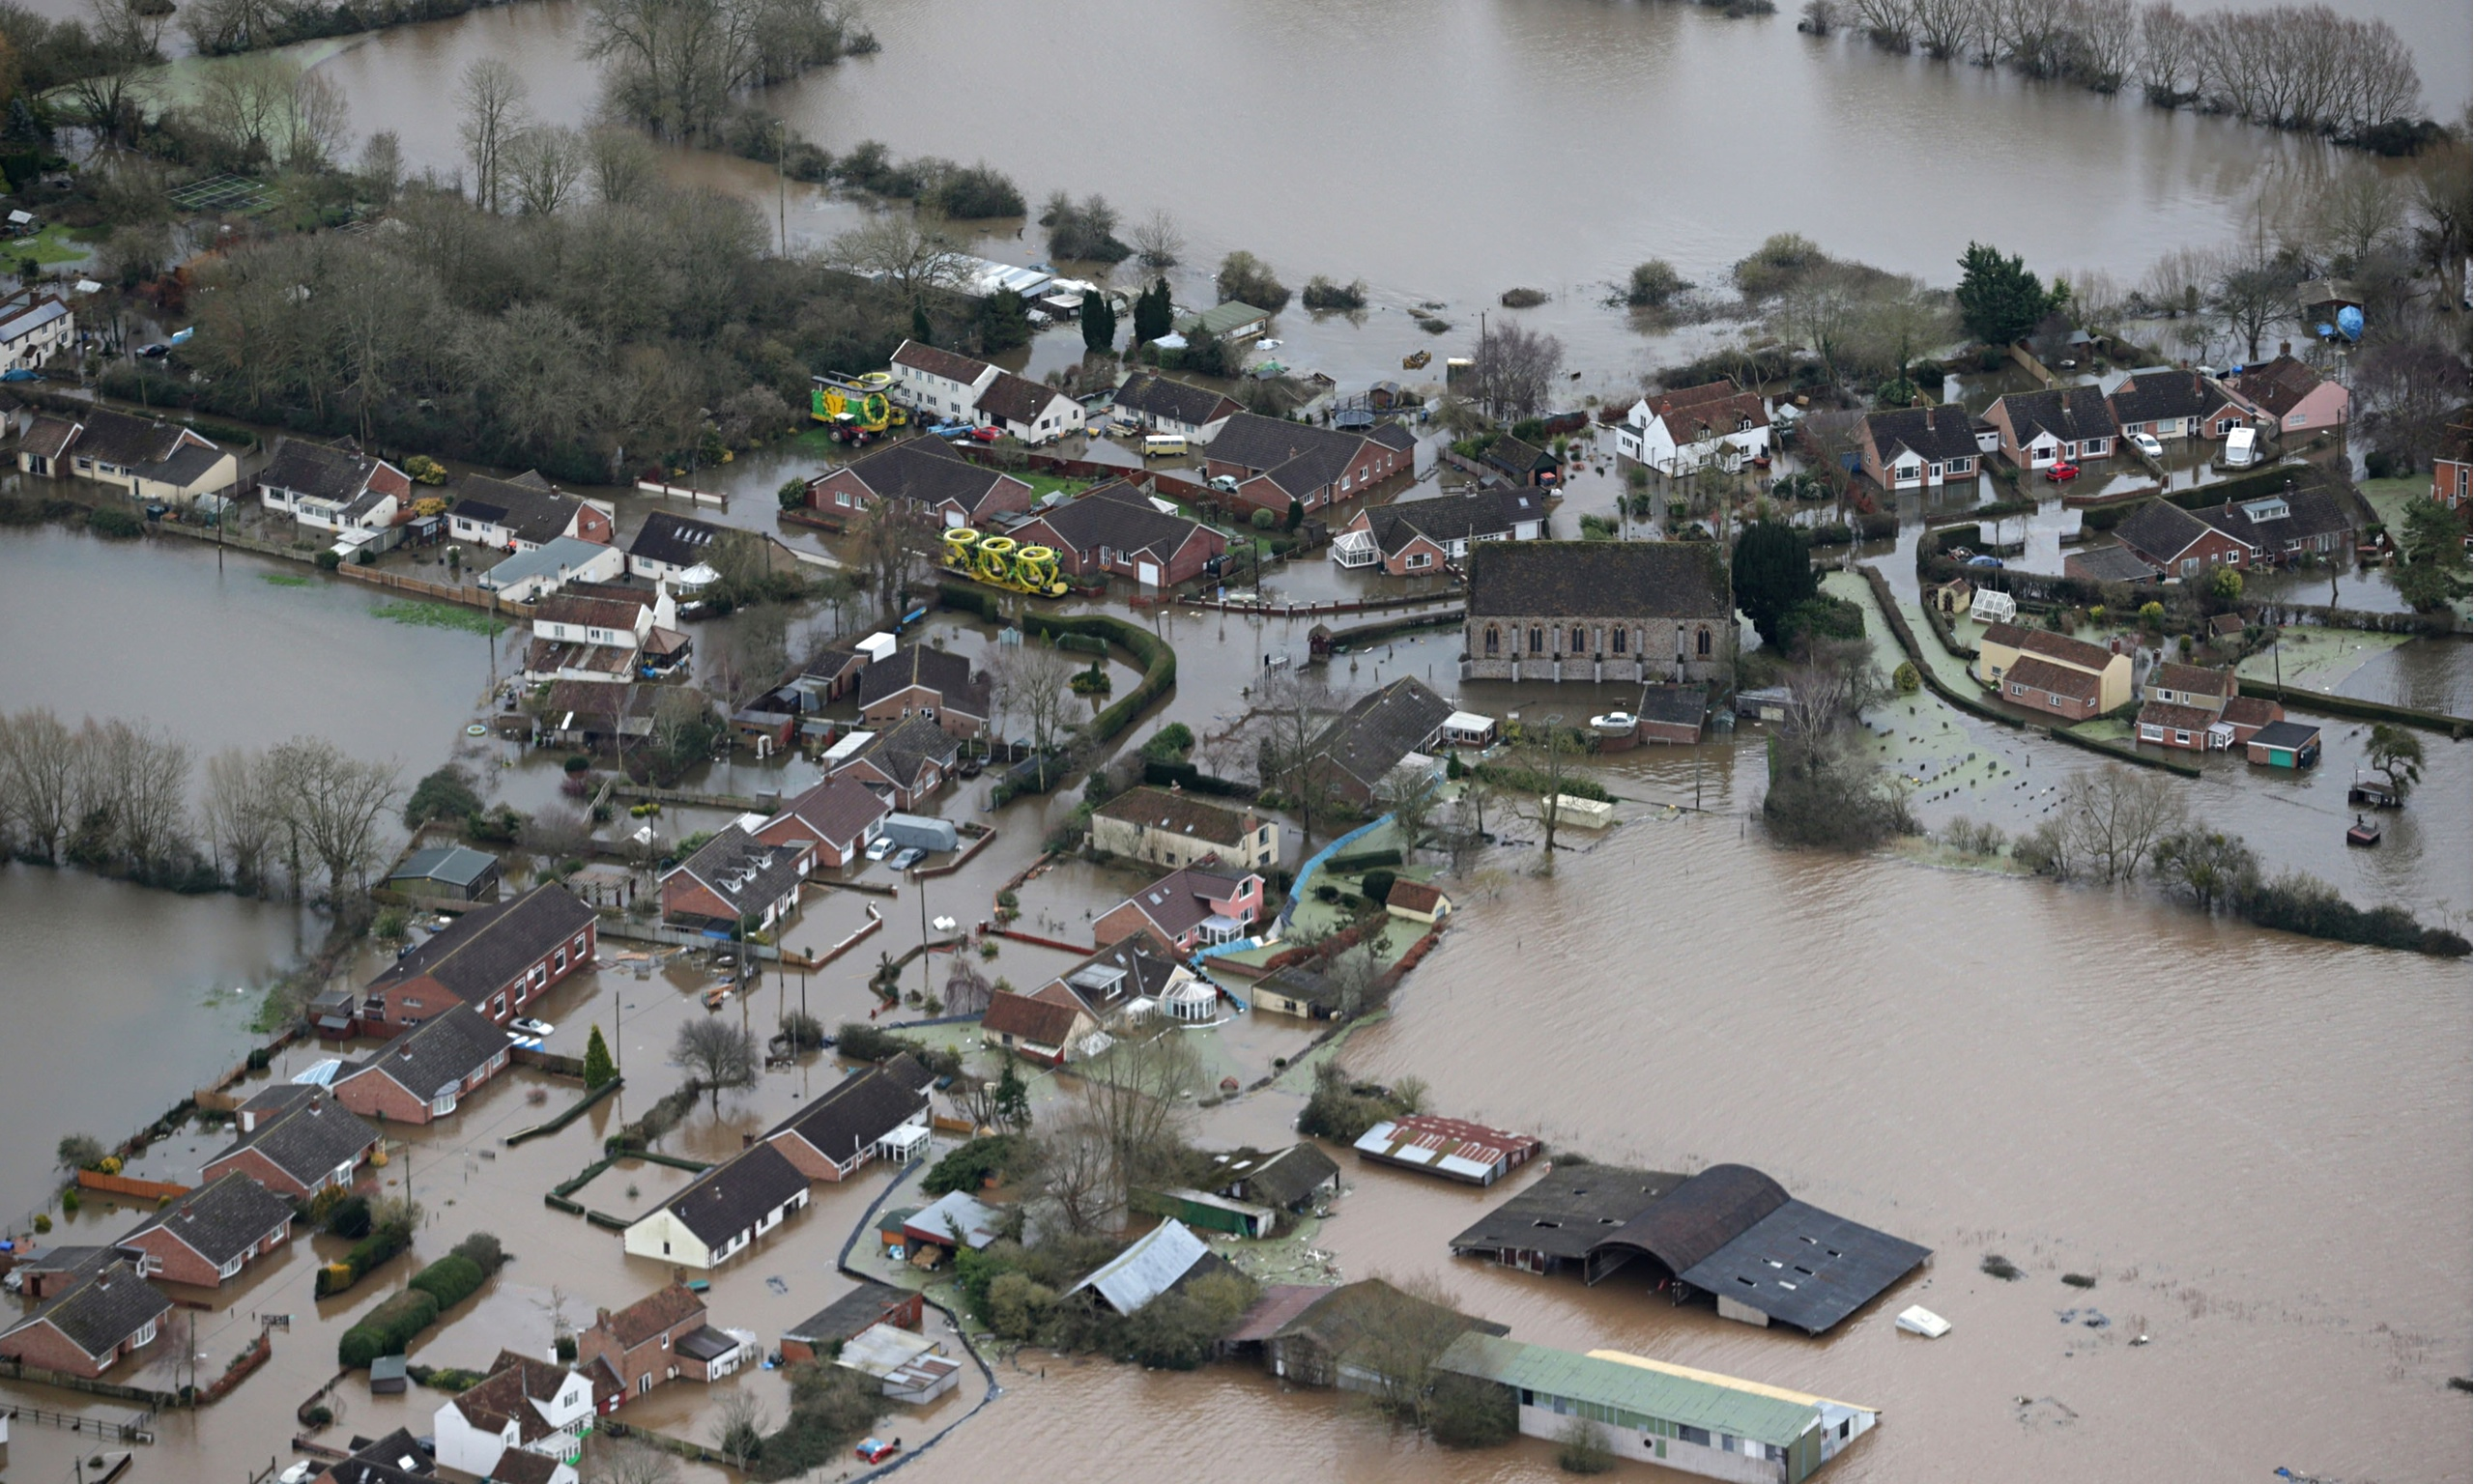 How to prepare for Flooding - Flood Aware - Flood Safety